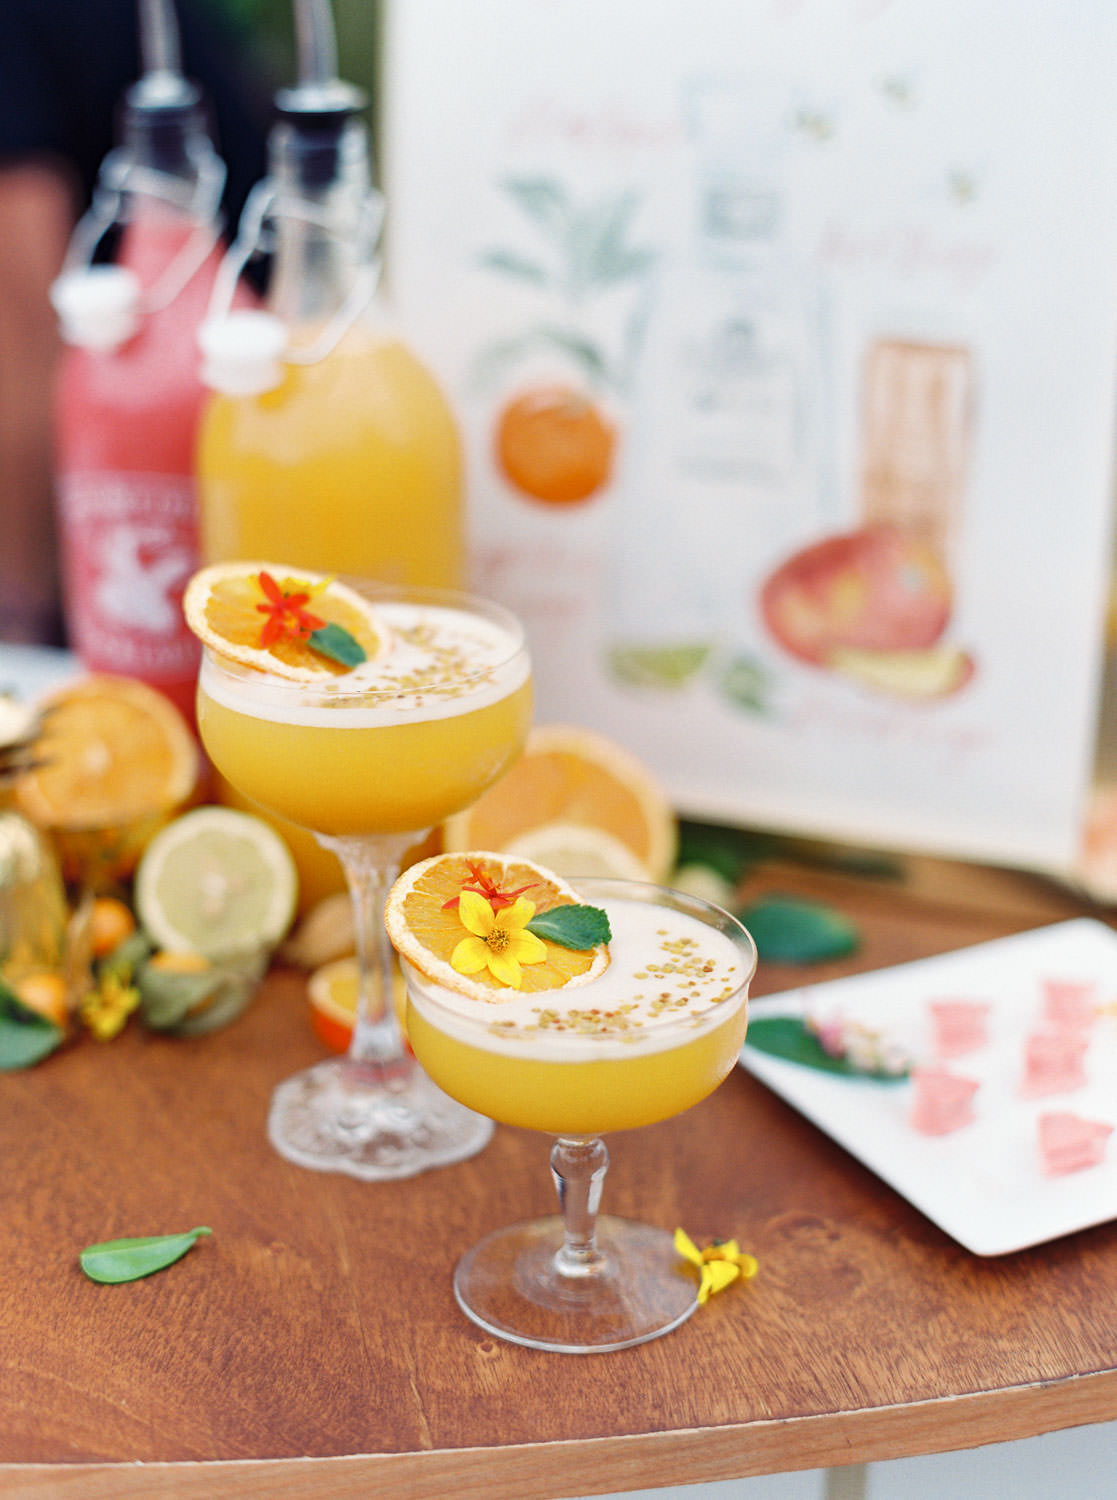 Golden yellow craft cocktails with bee pollen and orange slice garnish served in coupes. Beekeeper Inspired Wedding at Rancho Valencia on film by Cavin Elizabeth Photography